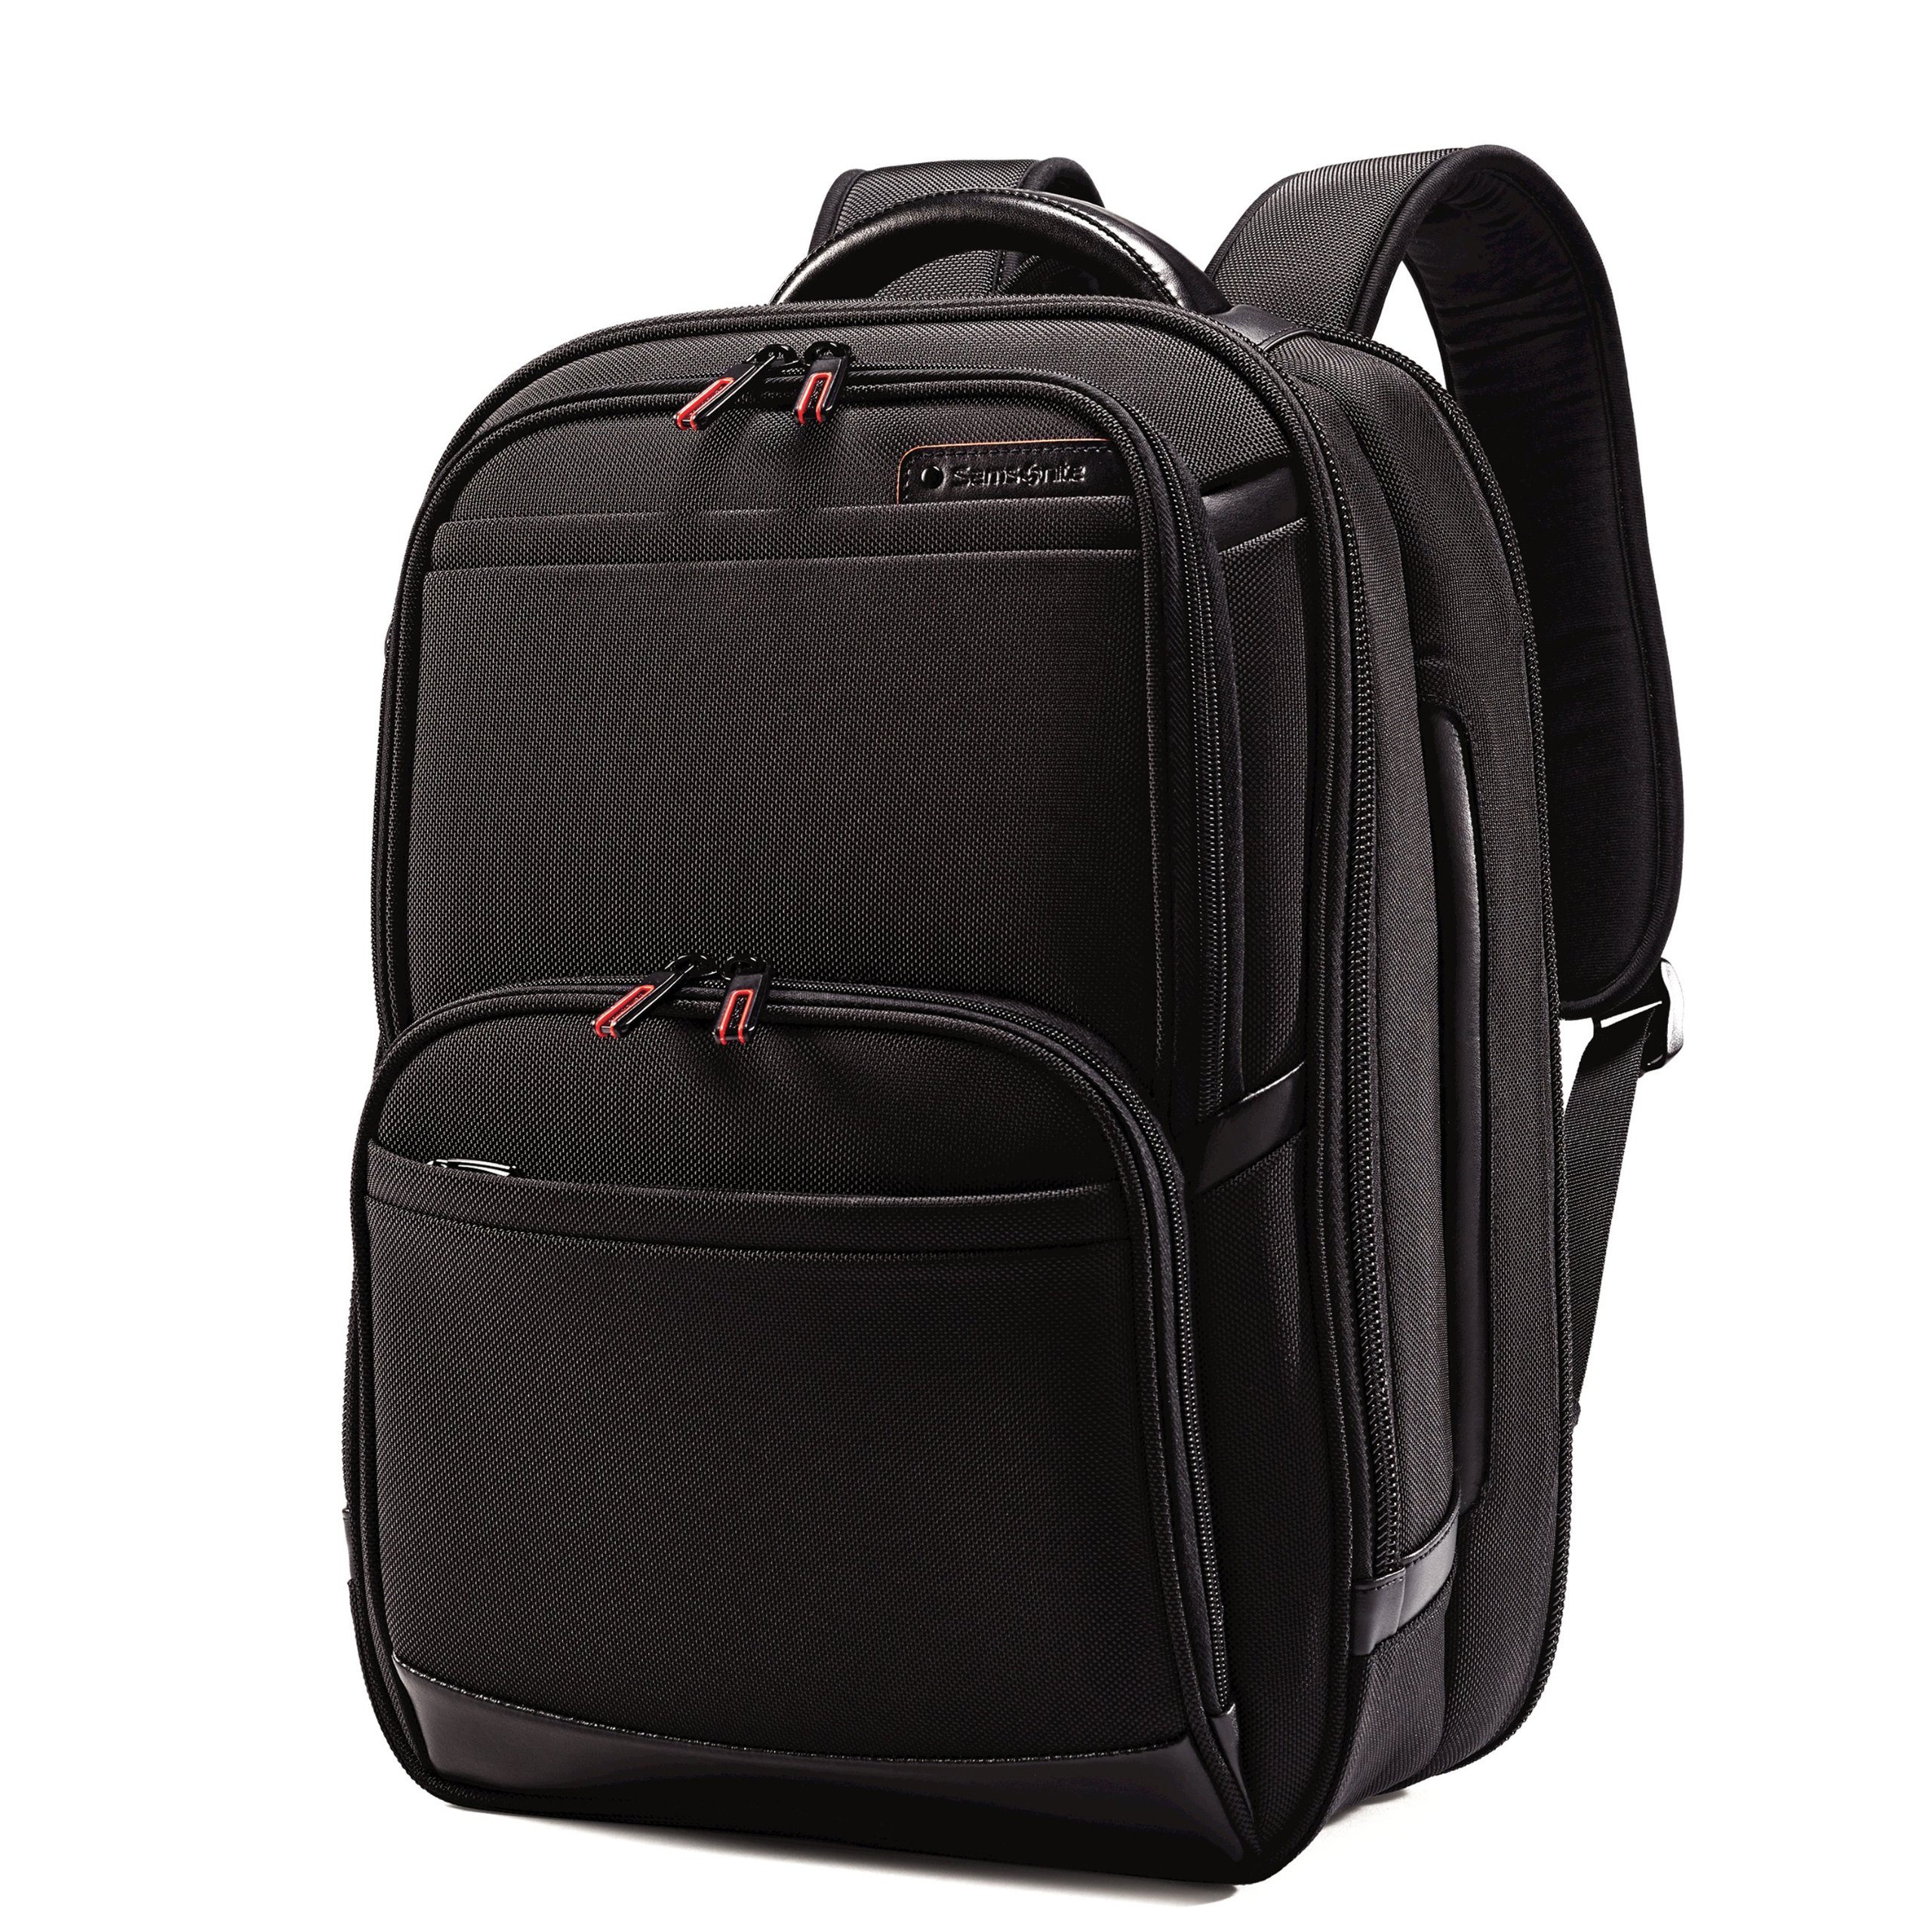 Samsonite Pro 4 DLX Urban Backpack PFT TSA, Black, One Size